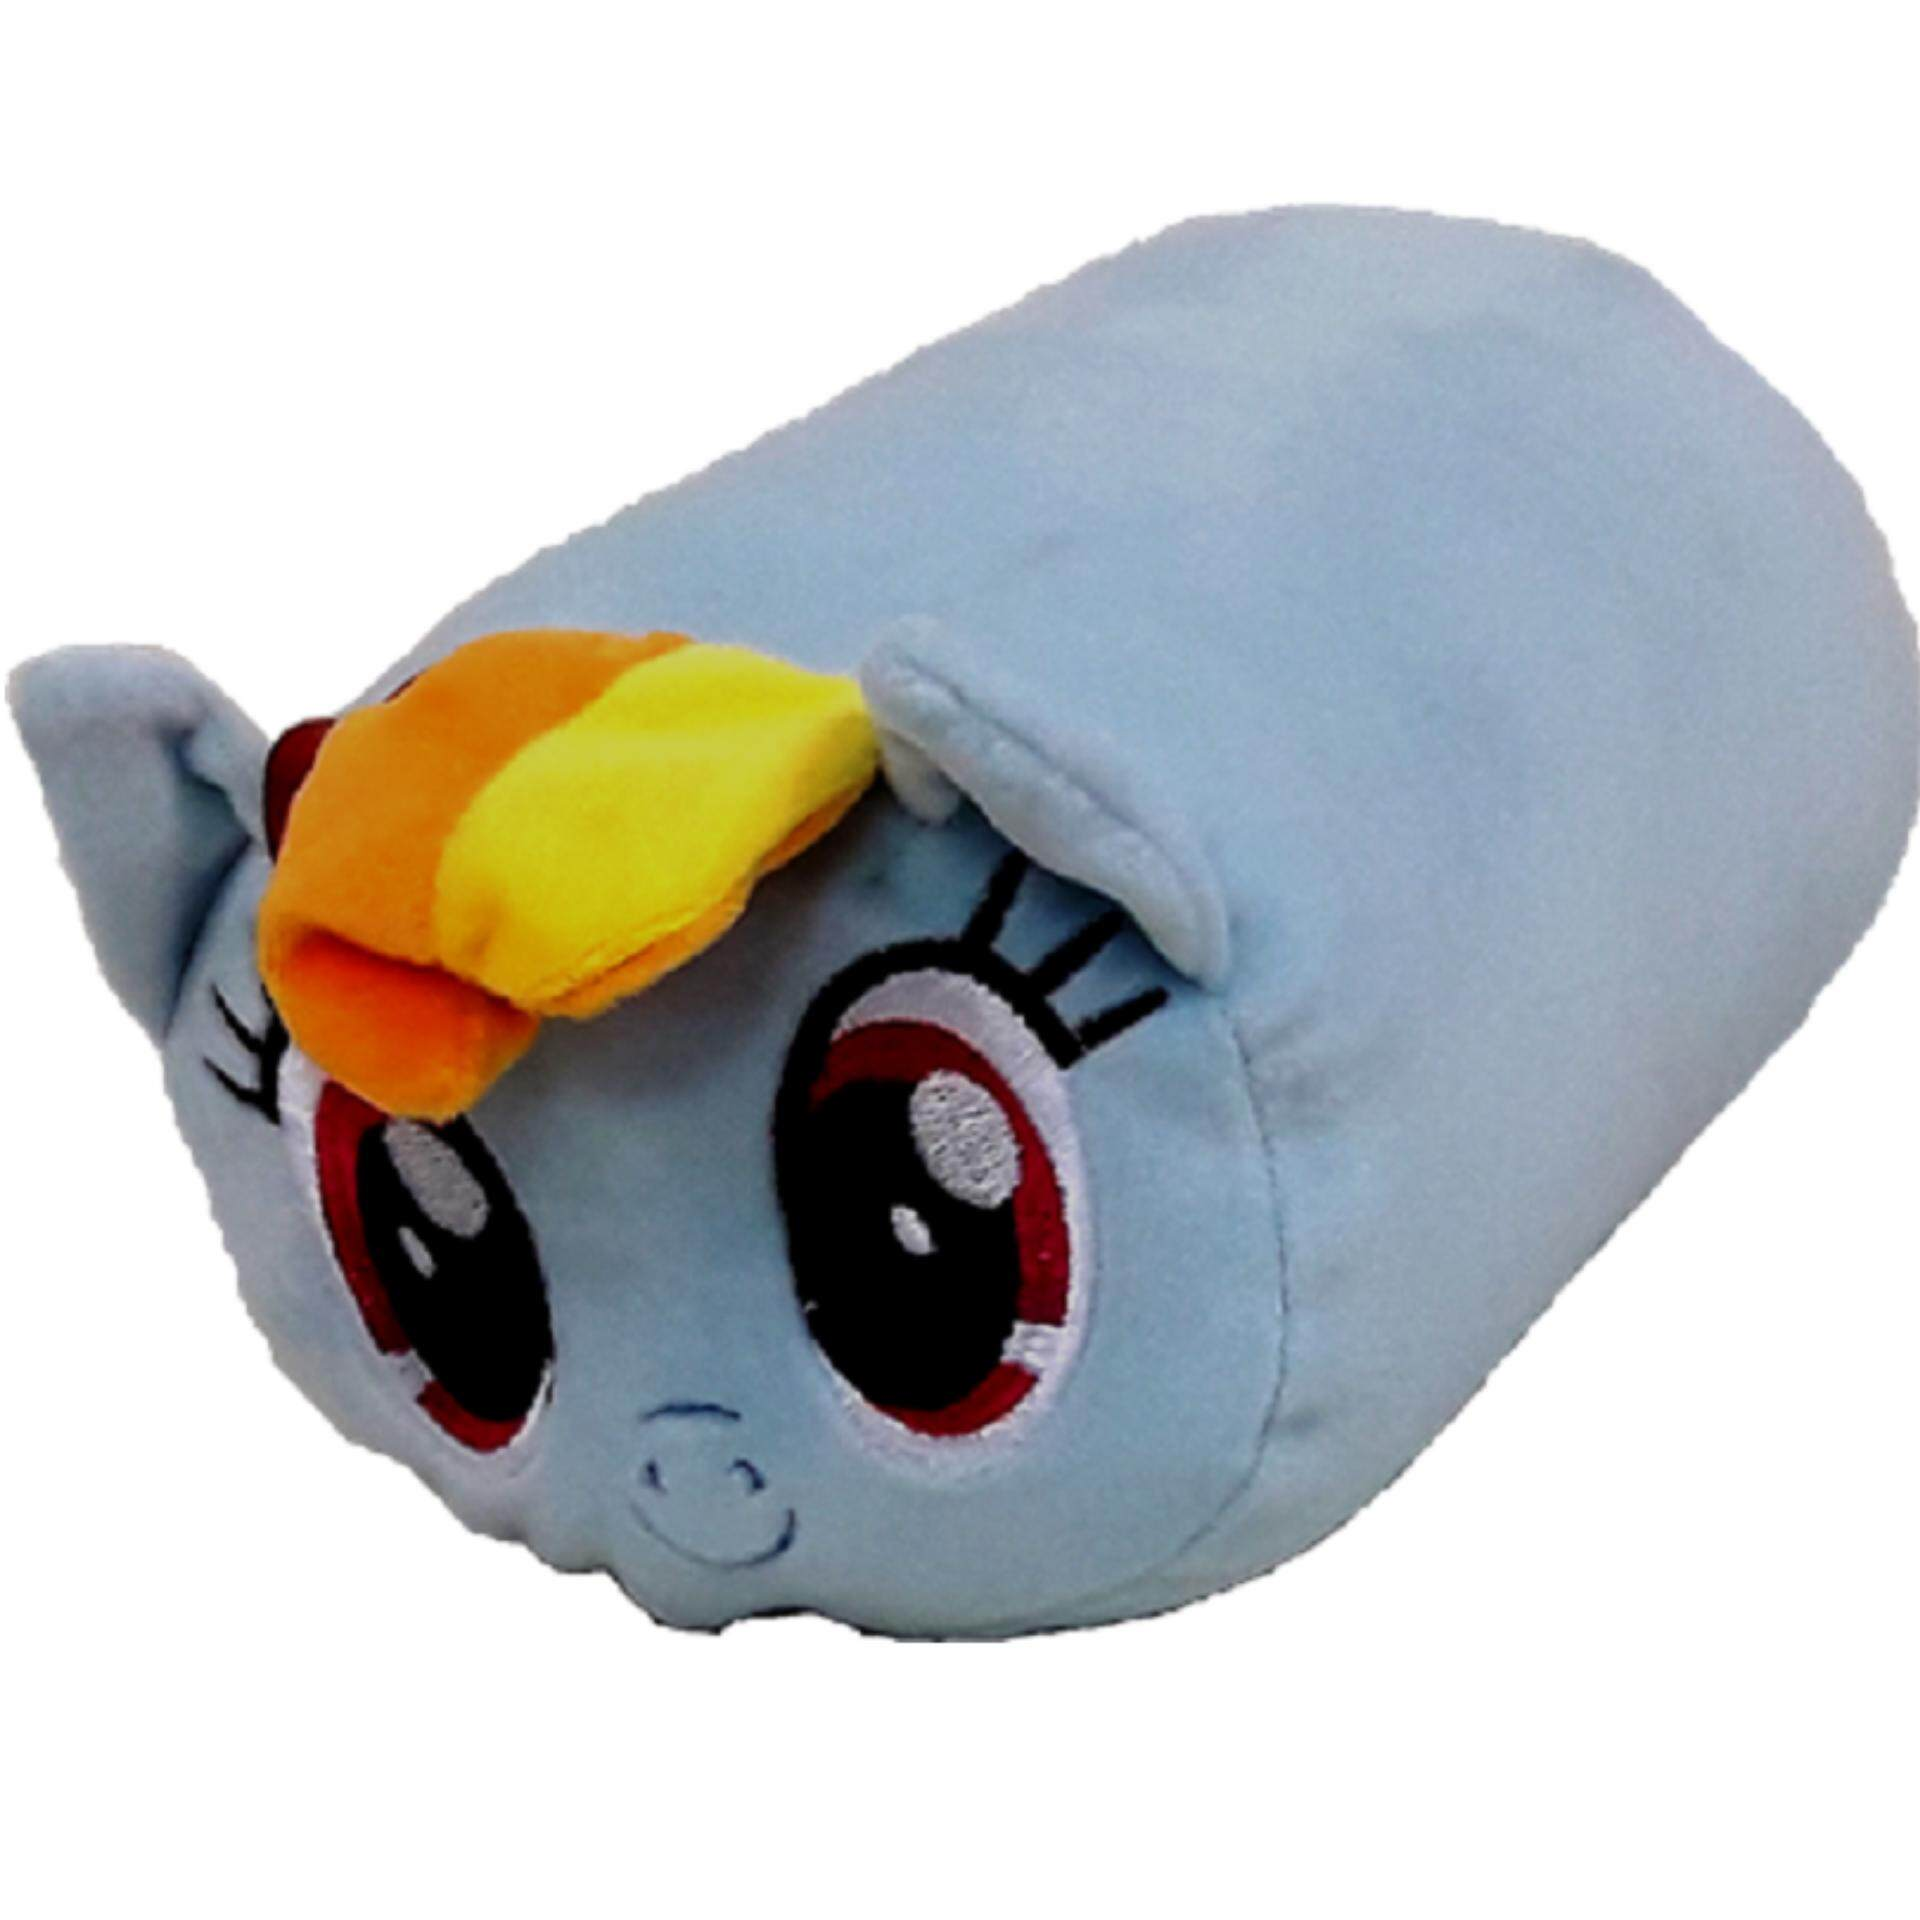 My Little Pony Long Cushion - Rainbow Dash